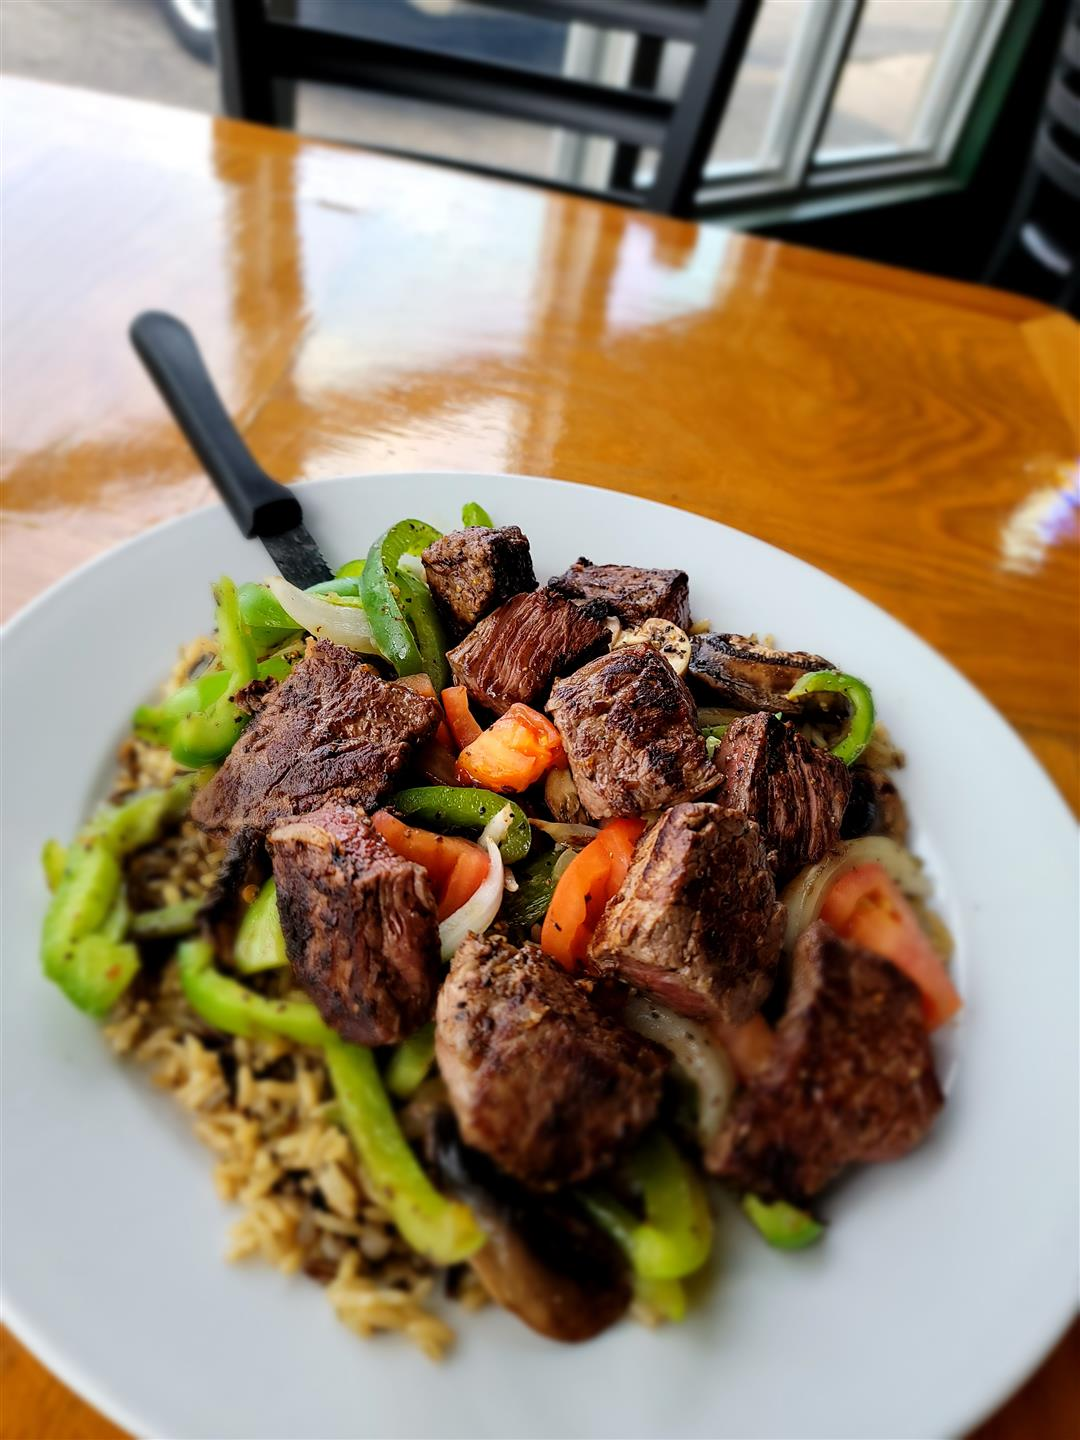 sirloin steak skillet - cut up pieces of steak with peppers and onions on a bed of rice